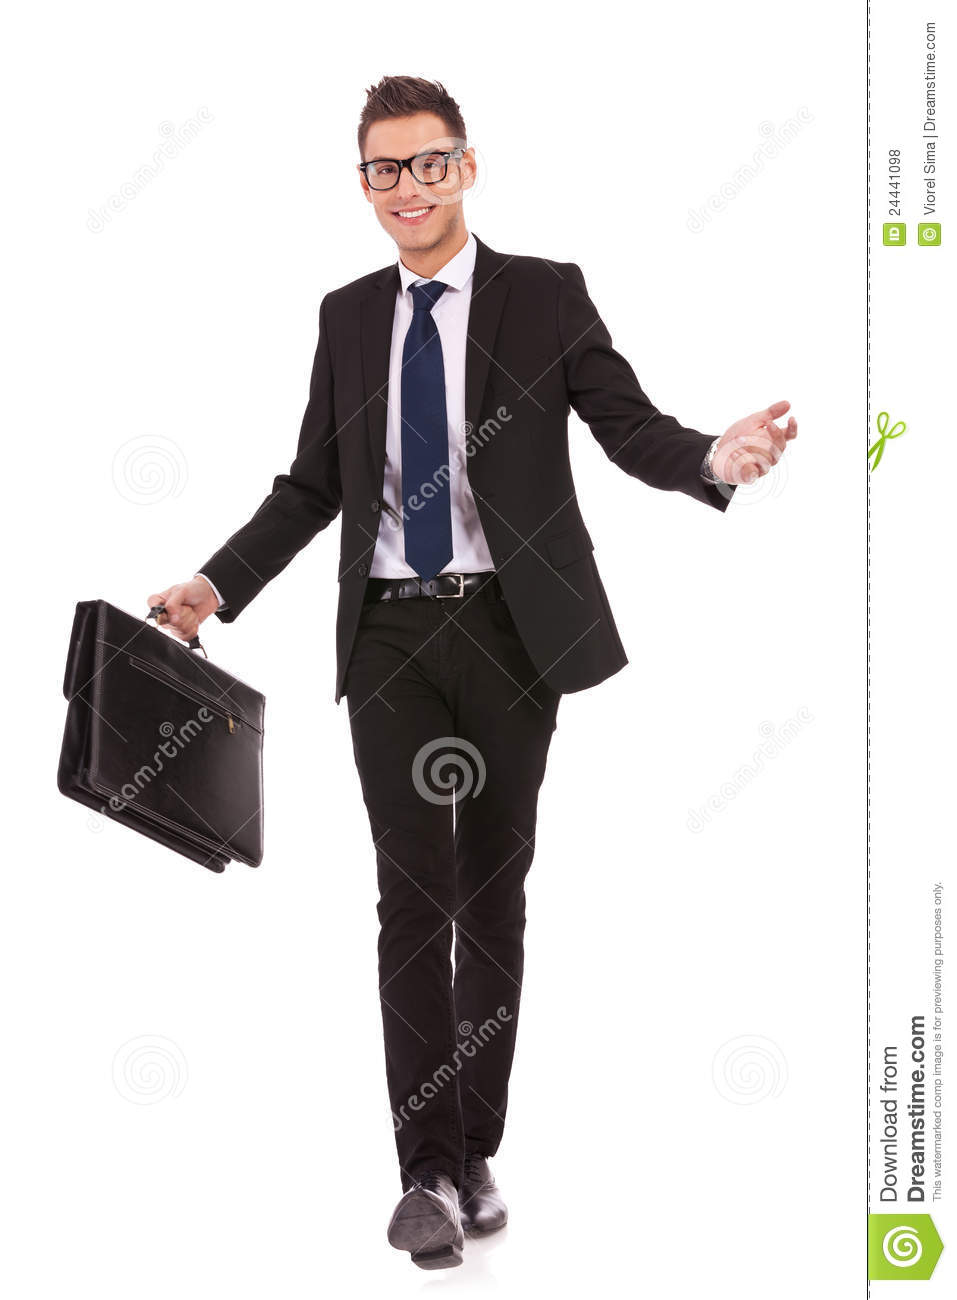 Young business man walking and welcoming